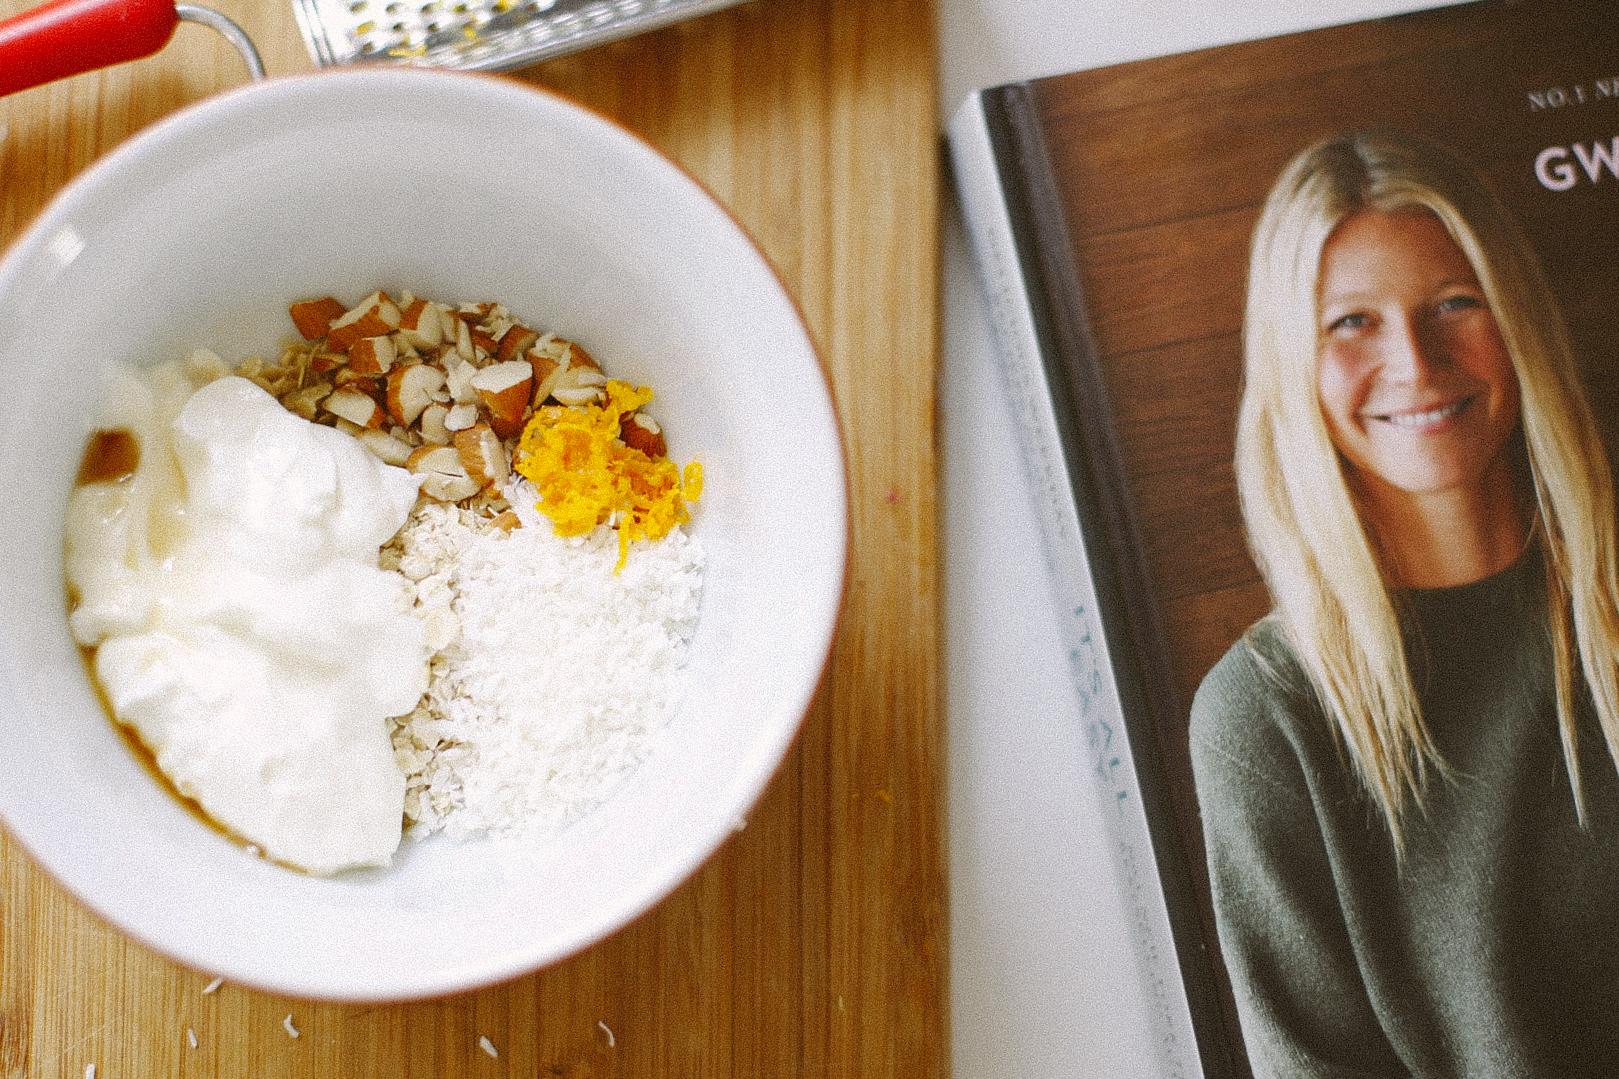 its_all_easy_gwynethpaltrow_cookbook_review12_0.jpg